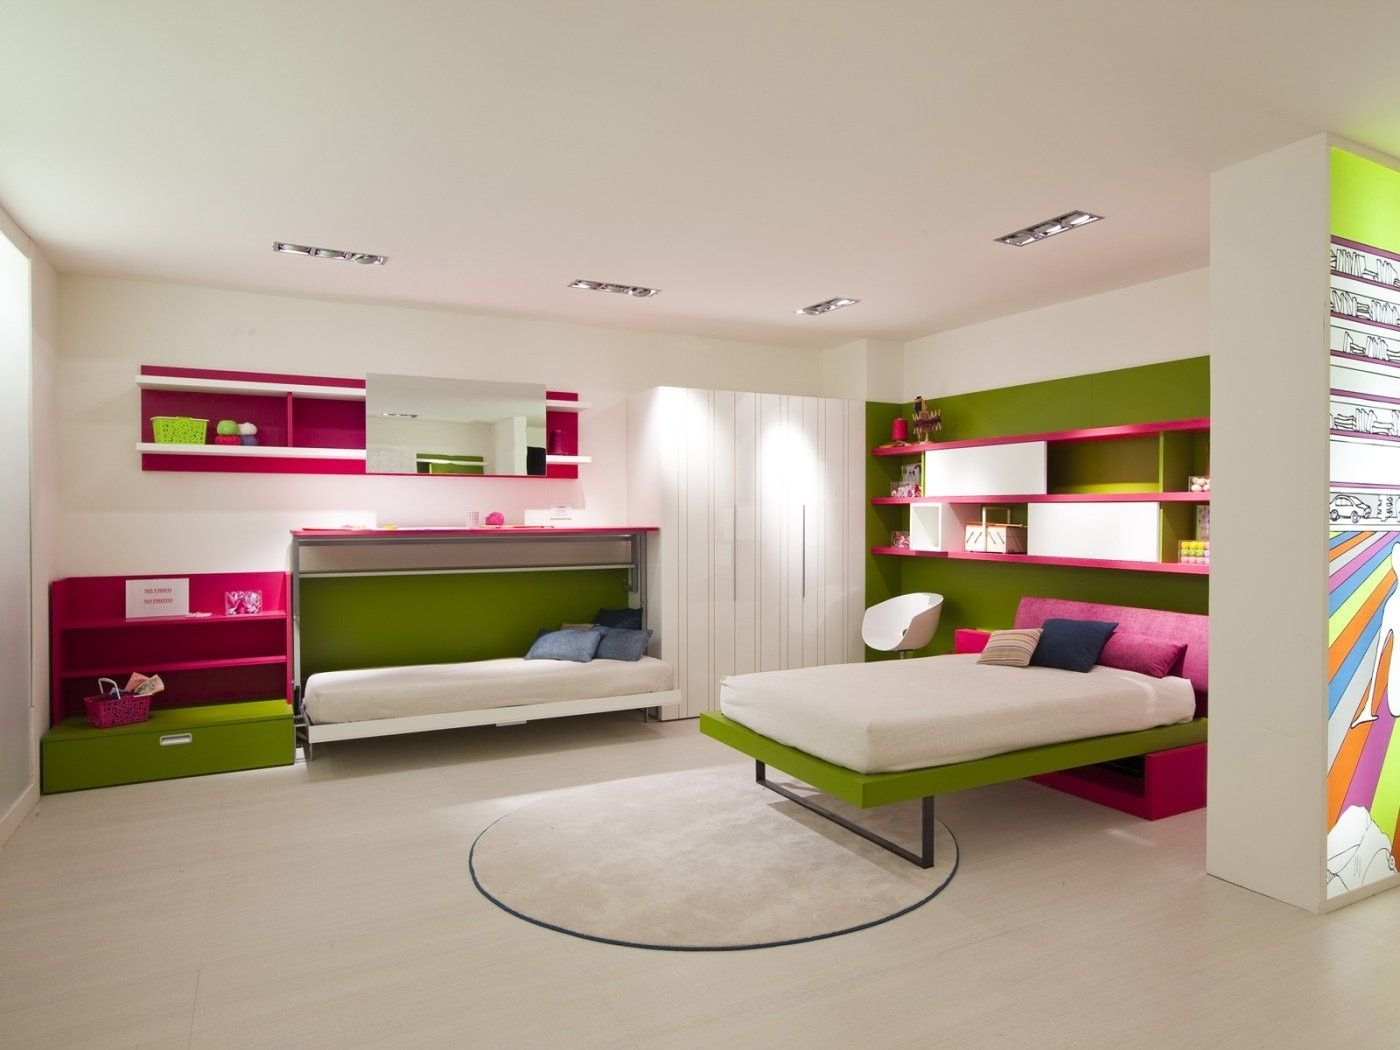 Remarkable Modern Colorful Teenage Girls Bedroom Designs With Red Hearth  Decorations And Cute Study Table Feat Pink Color Stand Light Floor Creative  Idea